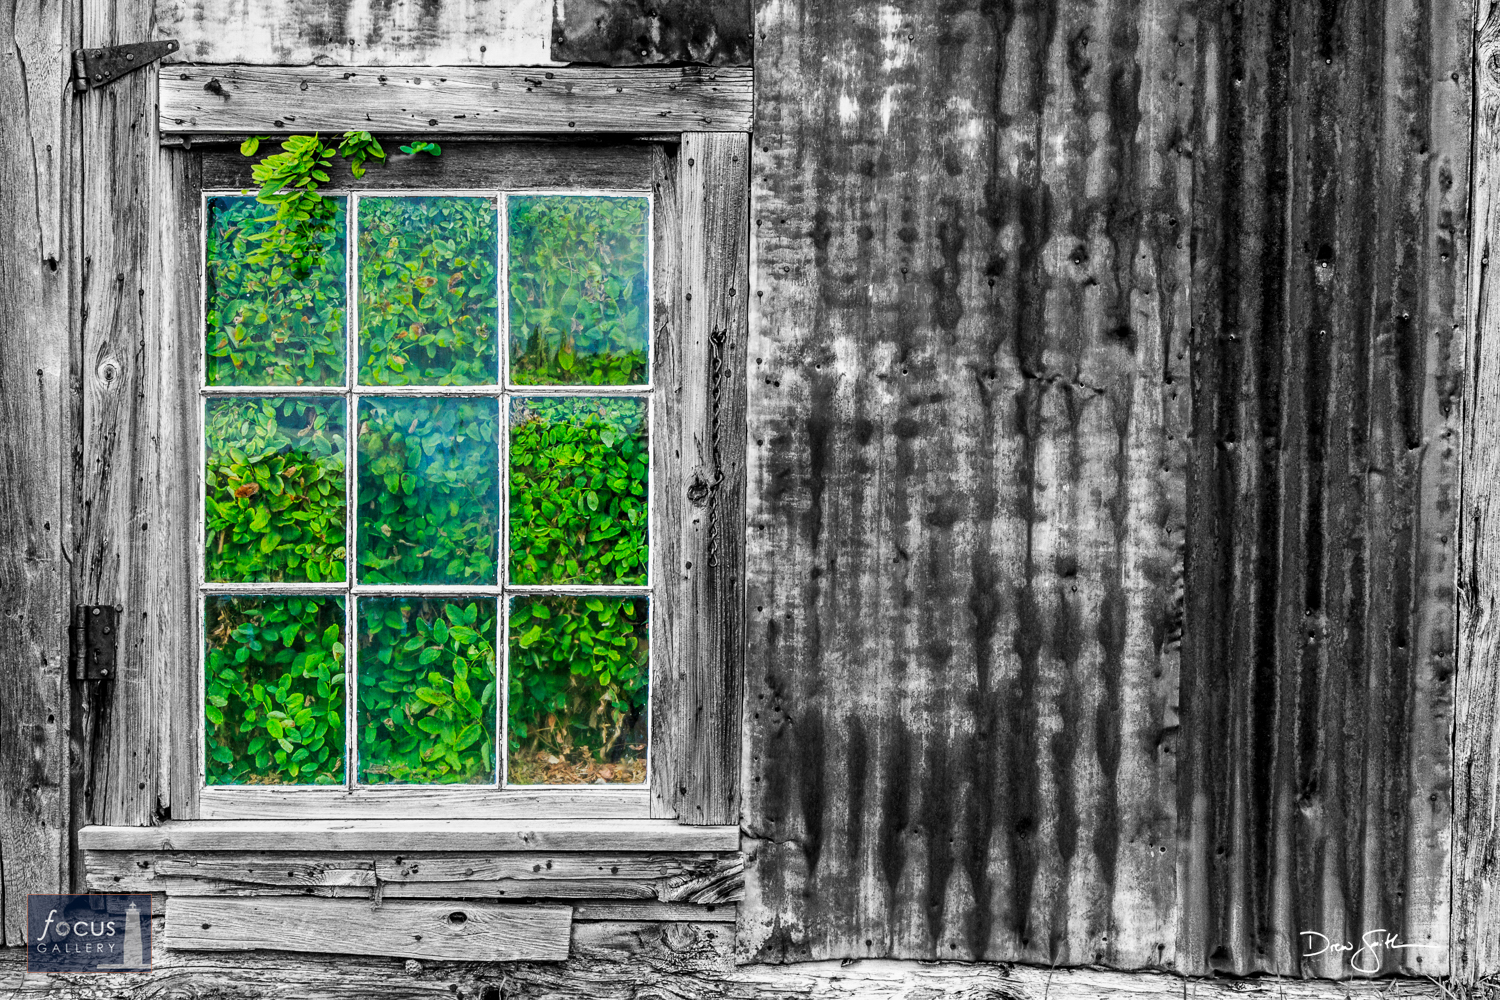 Photo © Drew Smith In the Port Oneida Rural Historic District of the Sleeping Bear Dunes there are a number of historic farms...